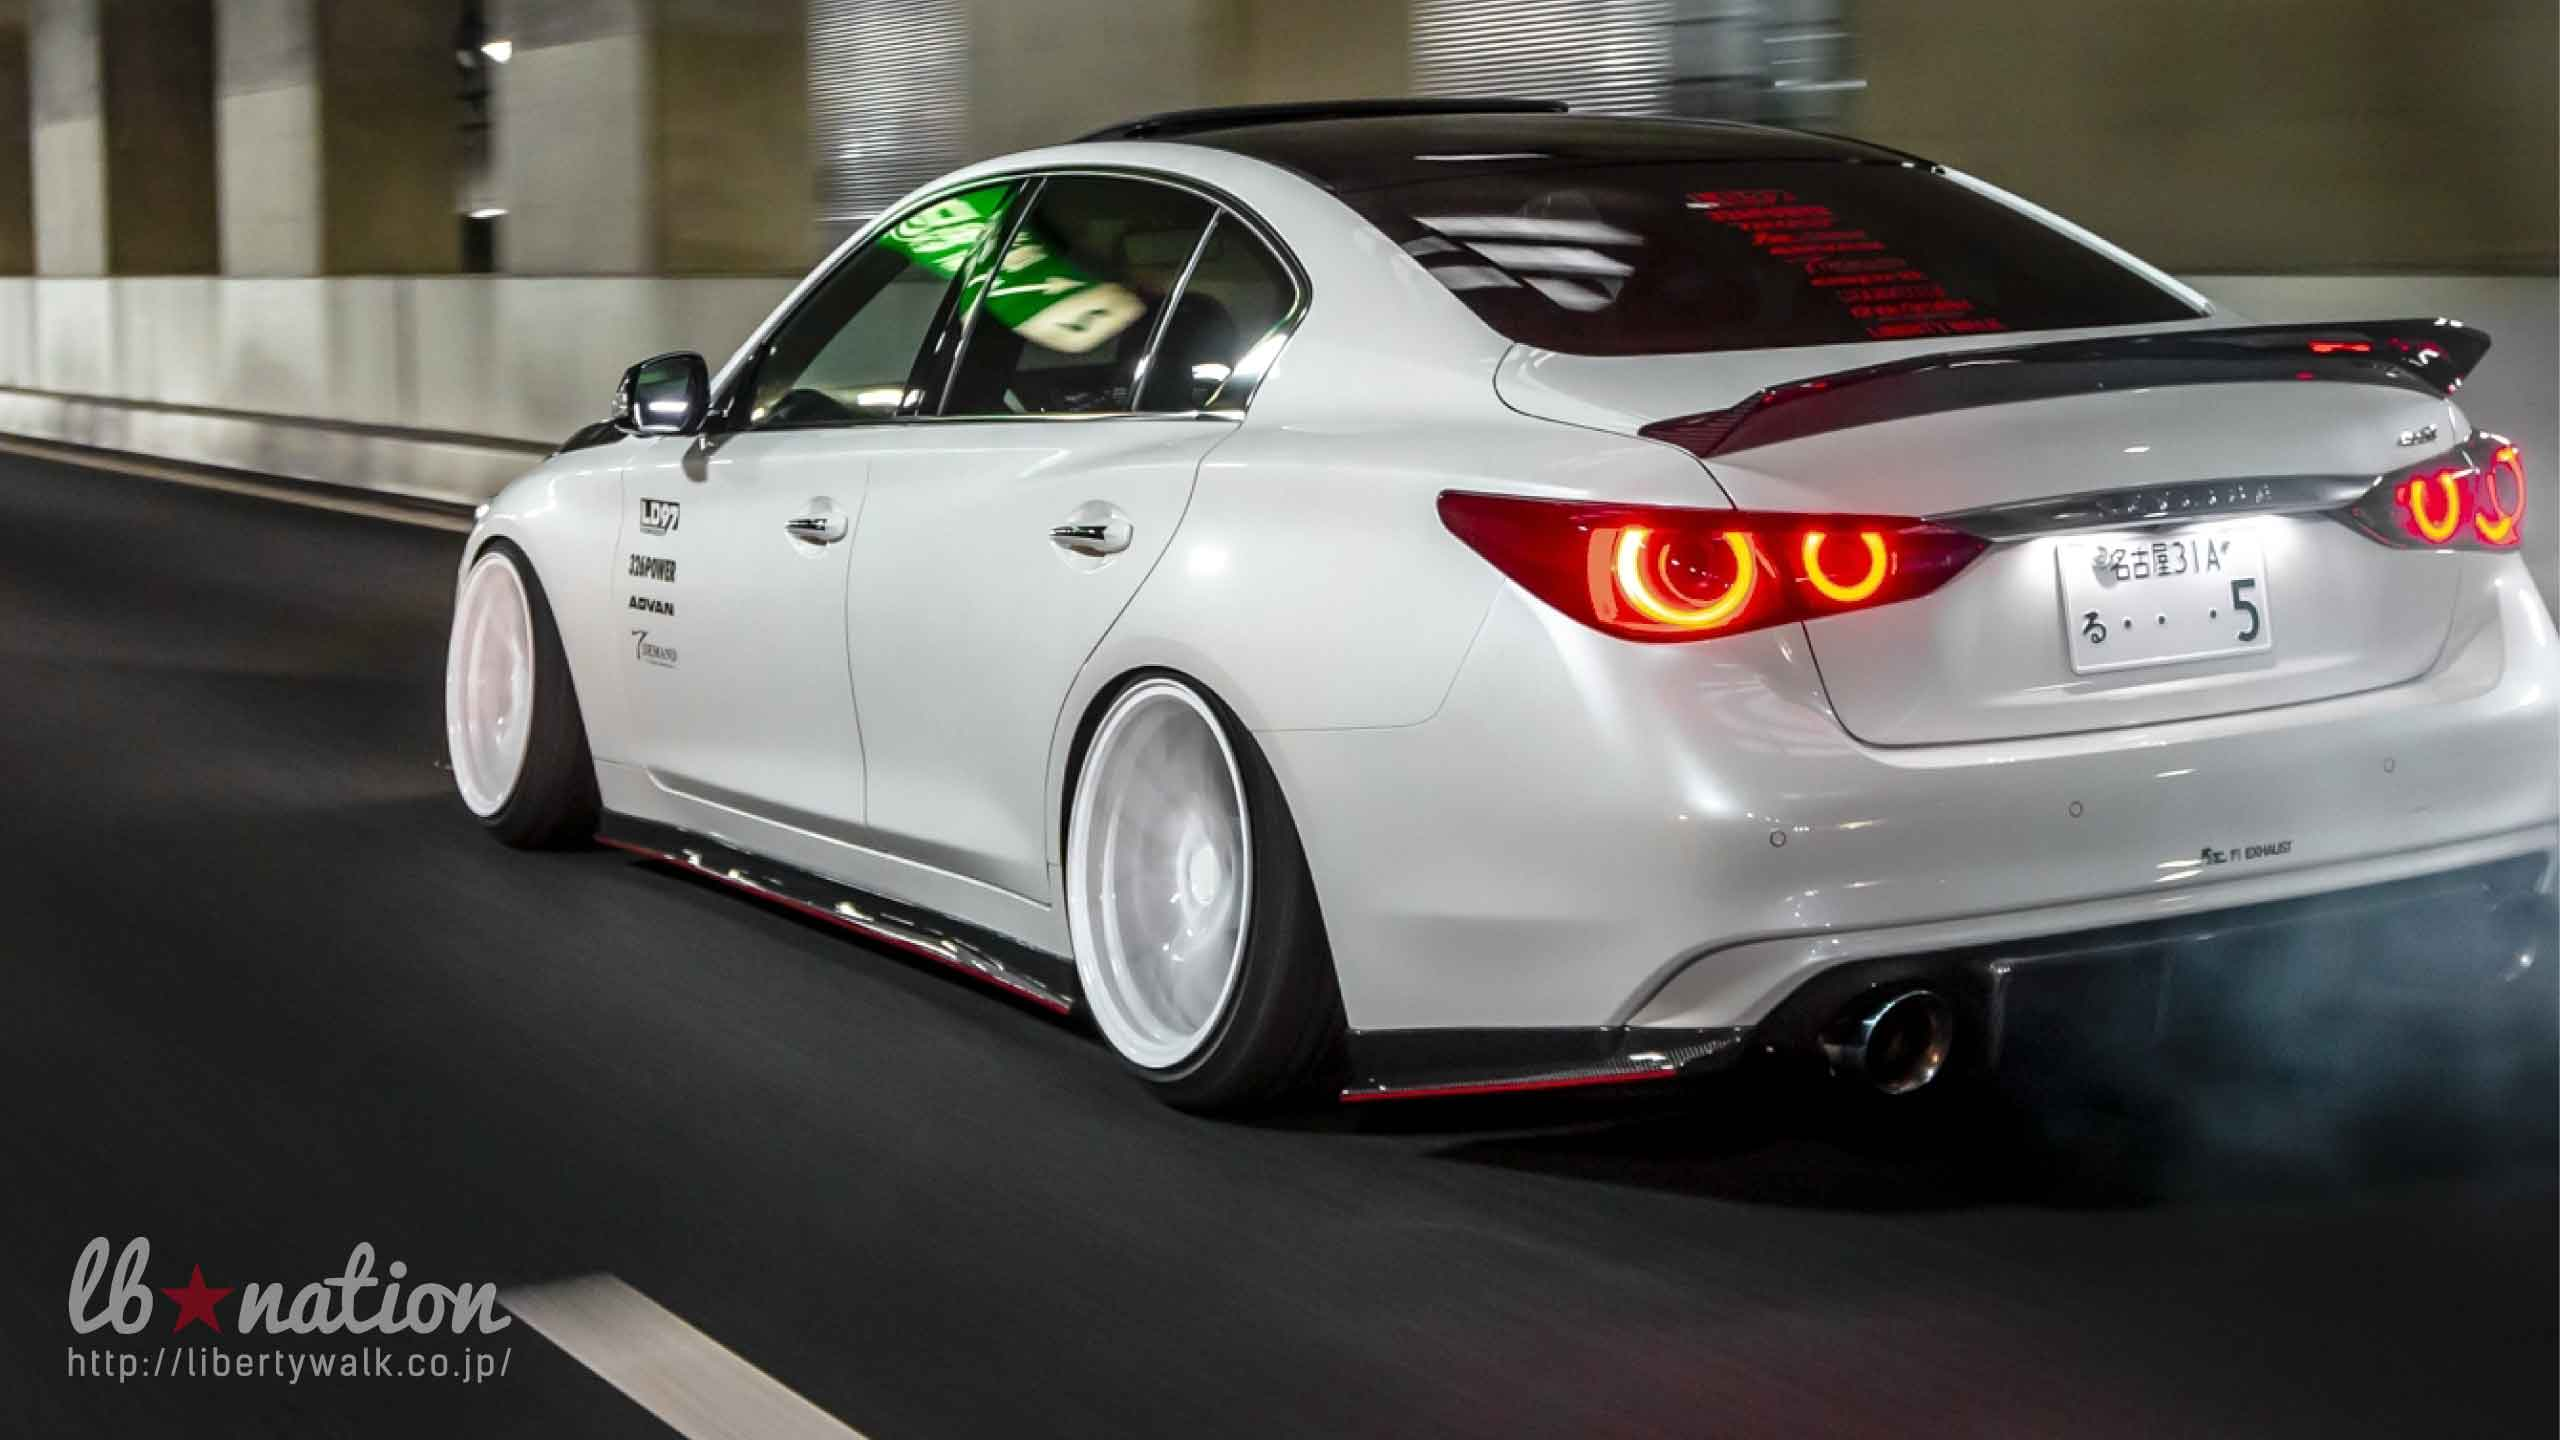 V37_22 lb★nation  NISSAN V37 SKYLINE / INFINITI Q50